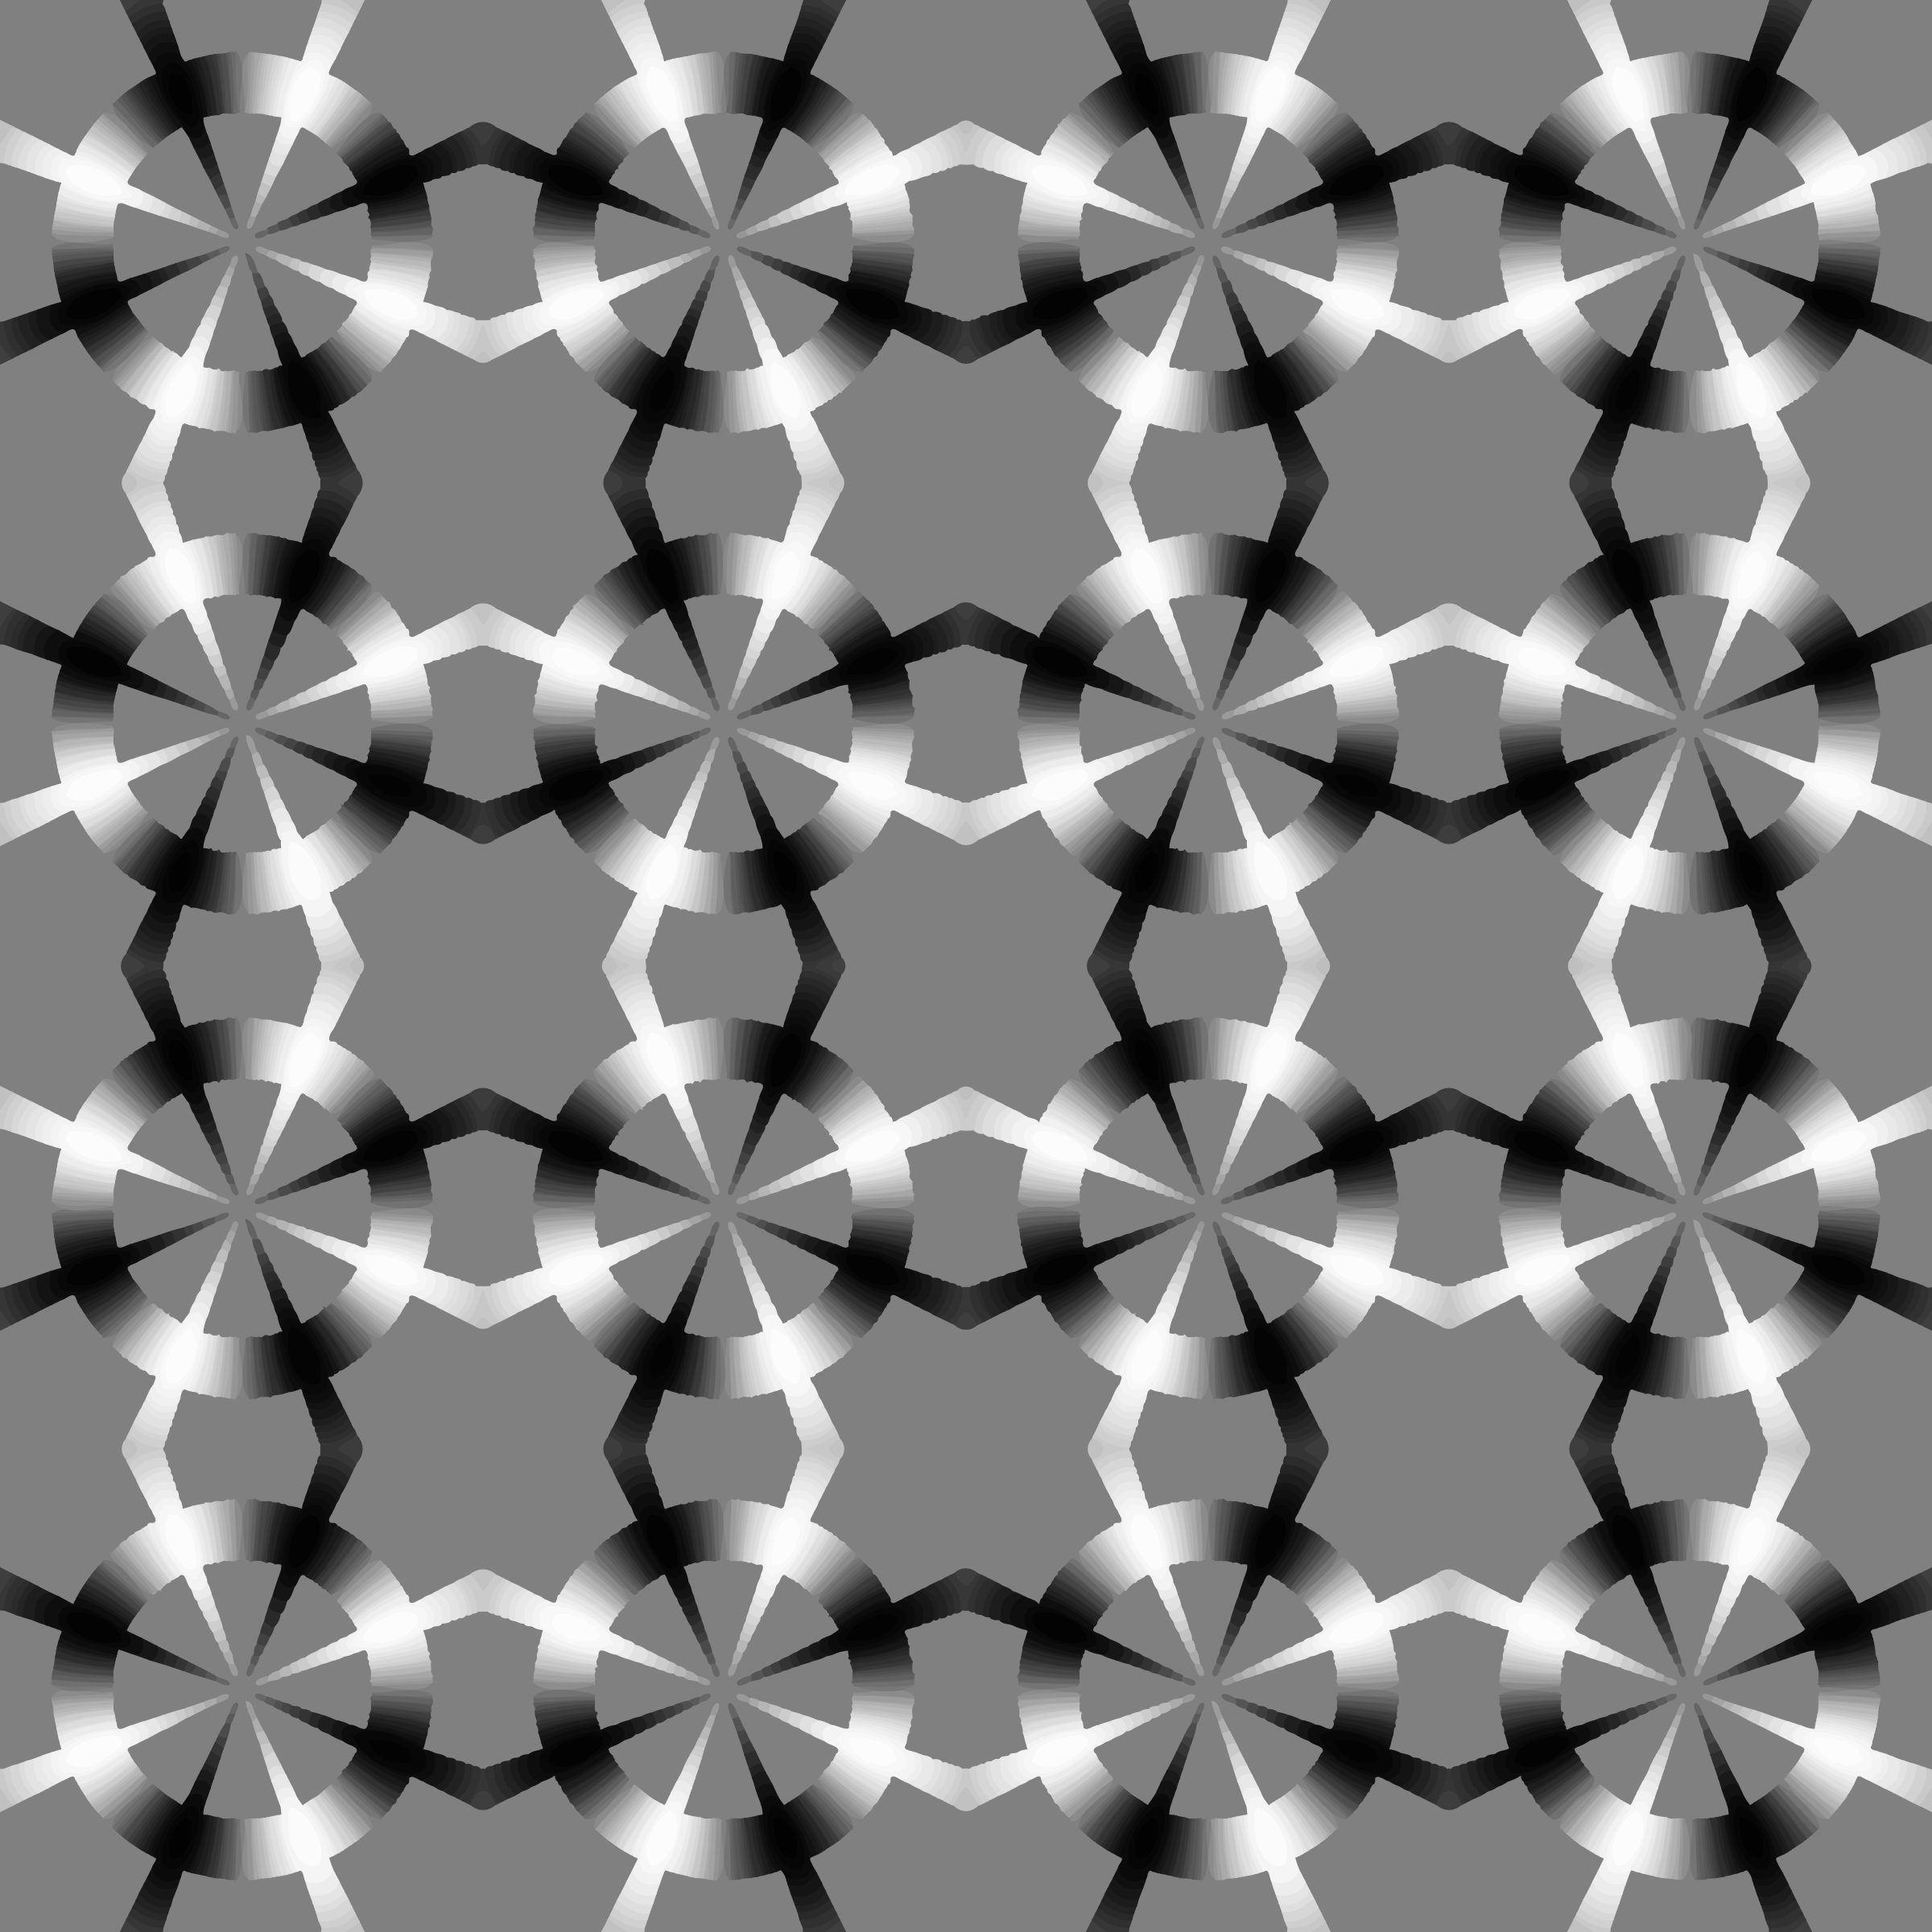 Background pattern 39 by Firkin